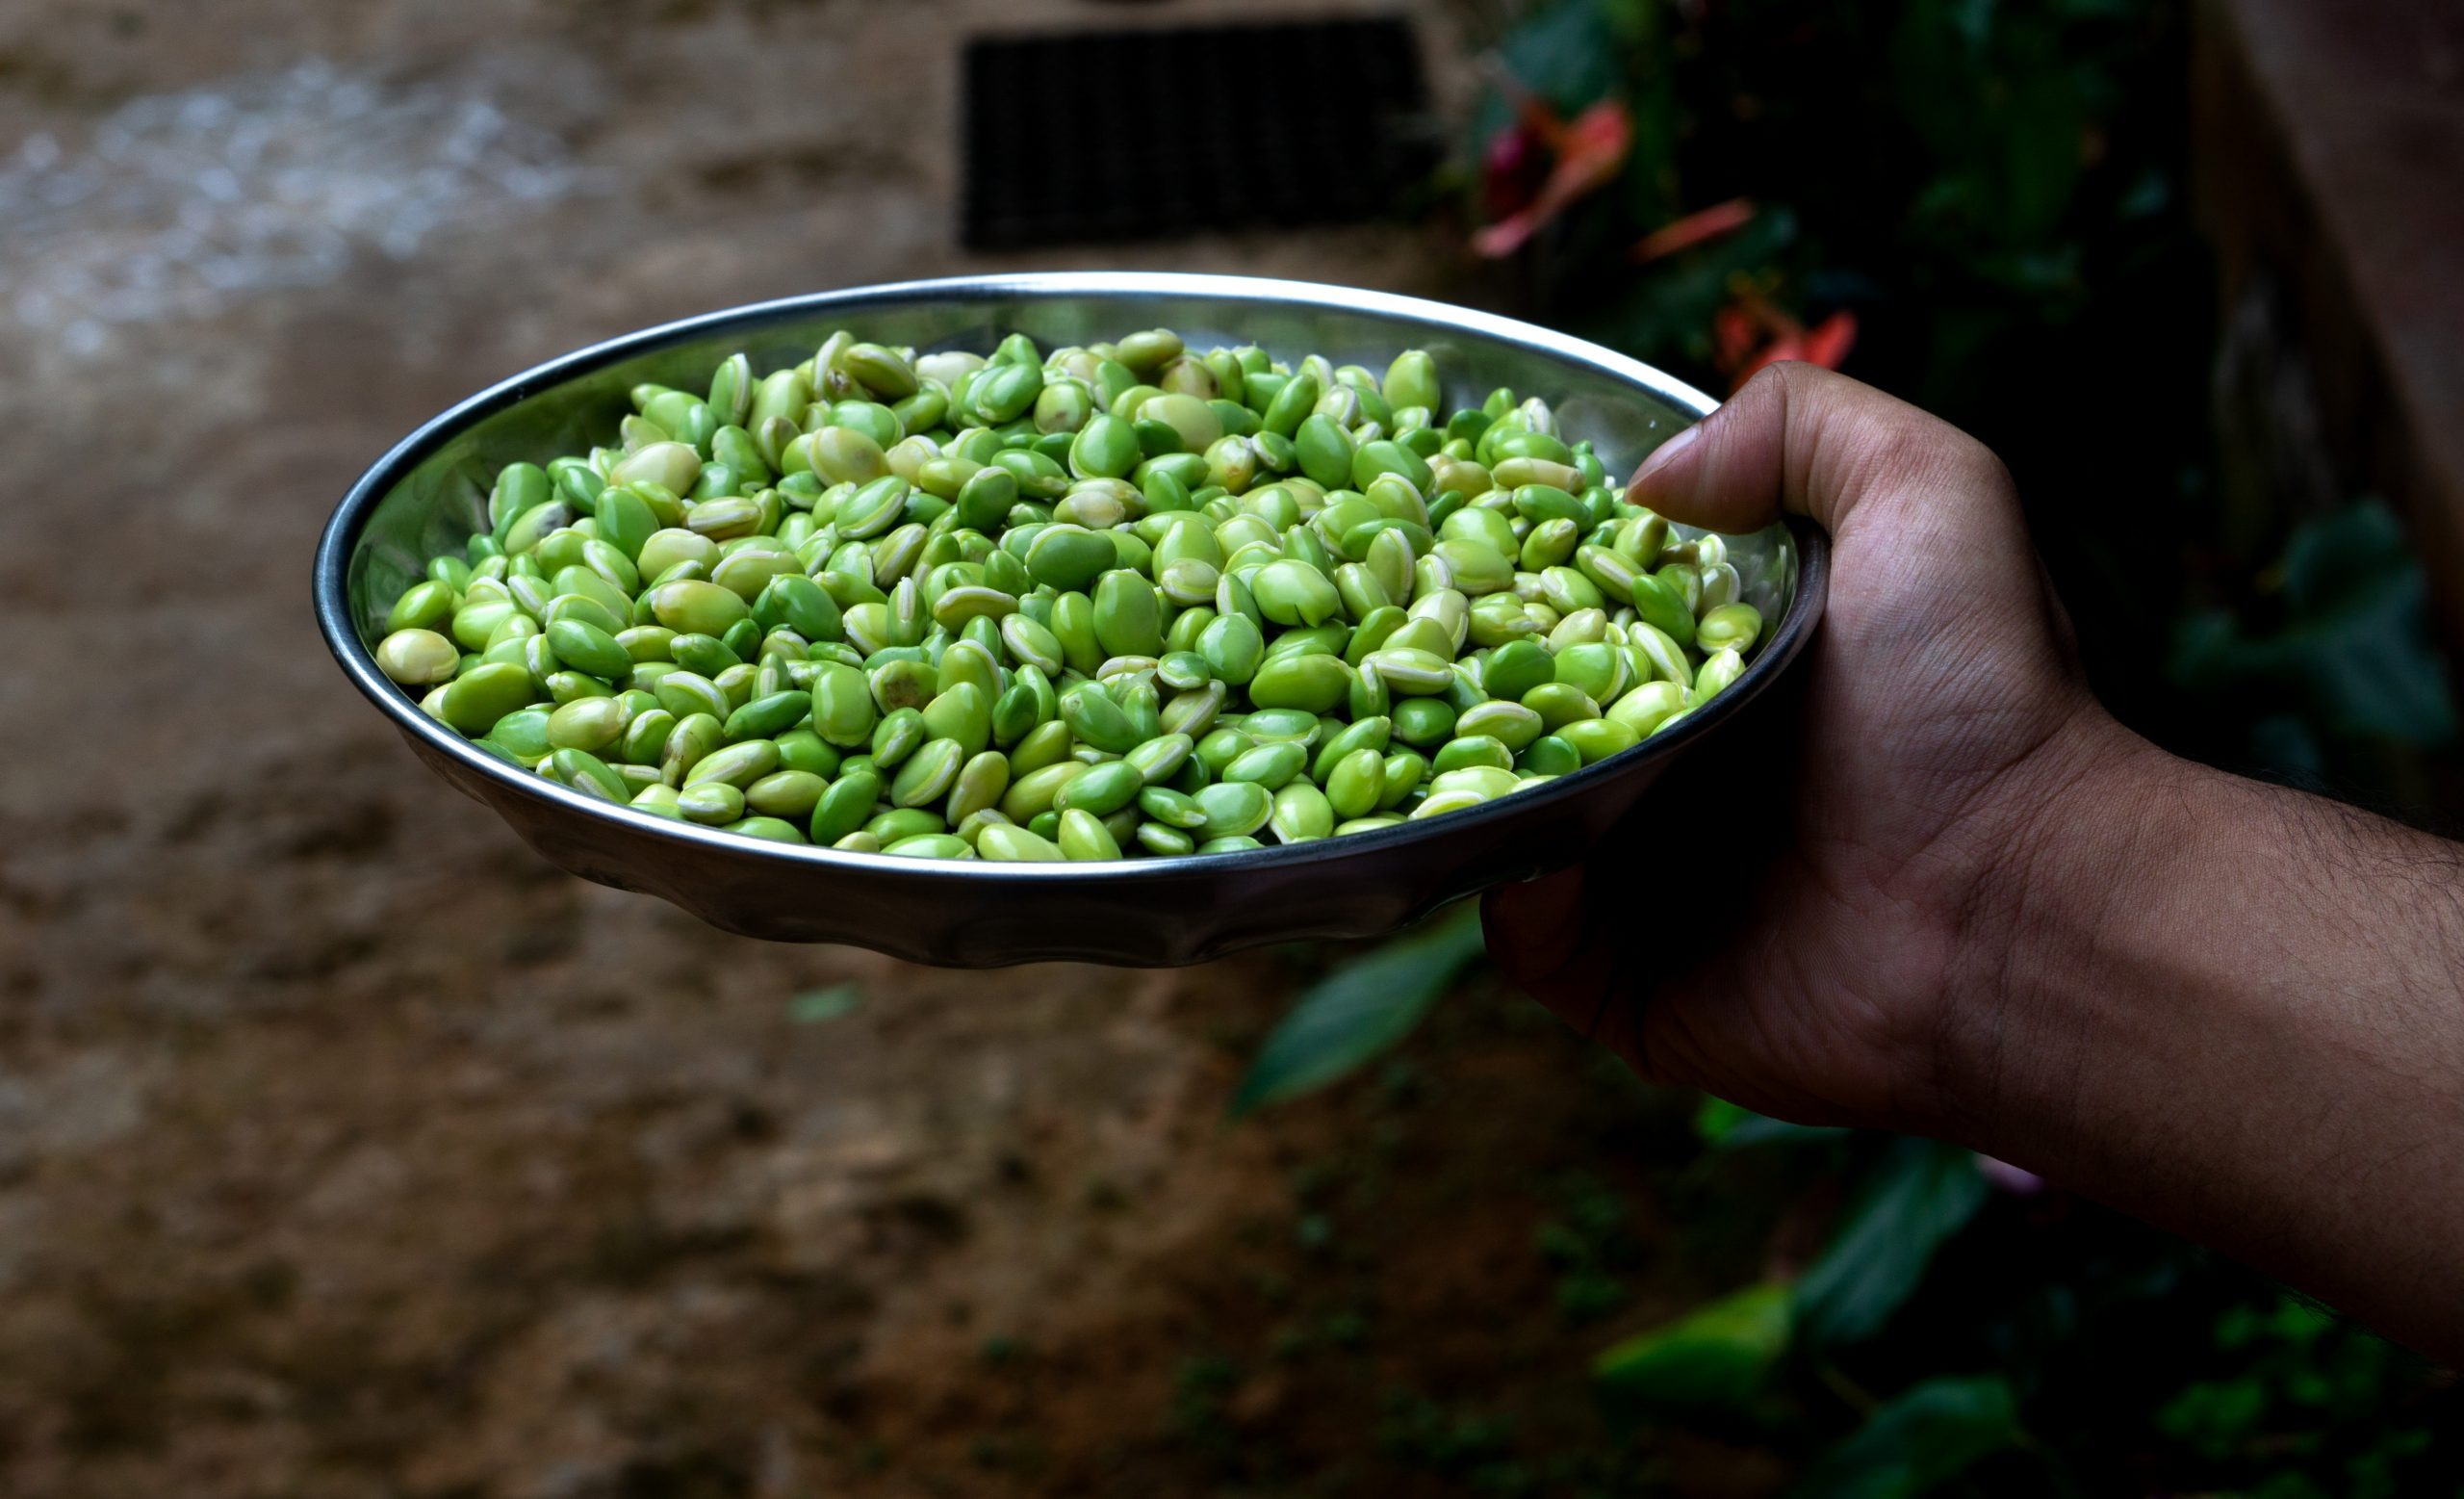 Lima beans in a plate